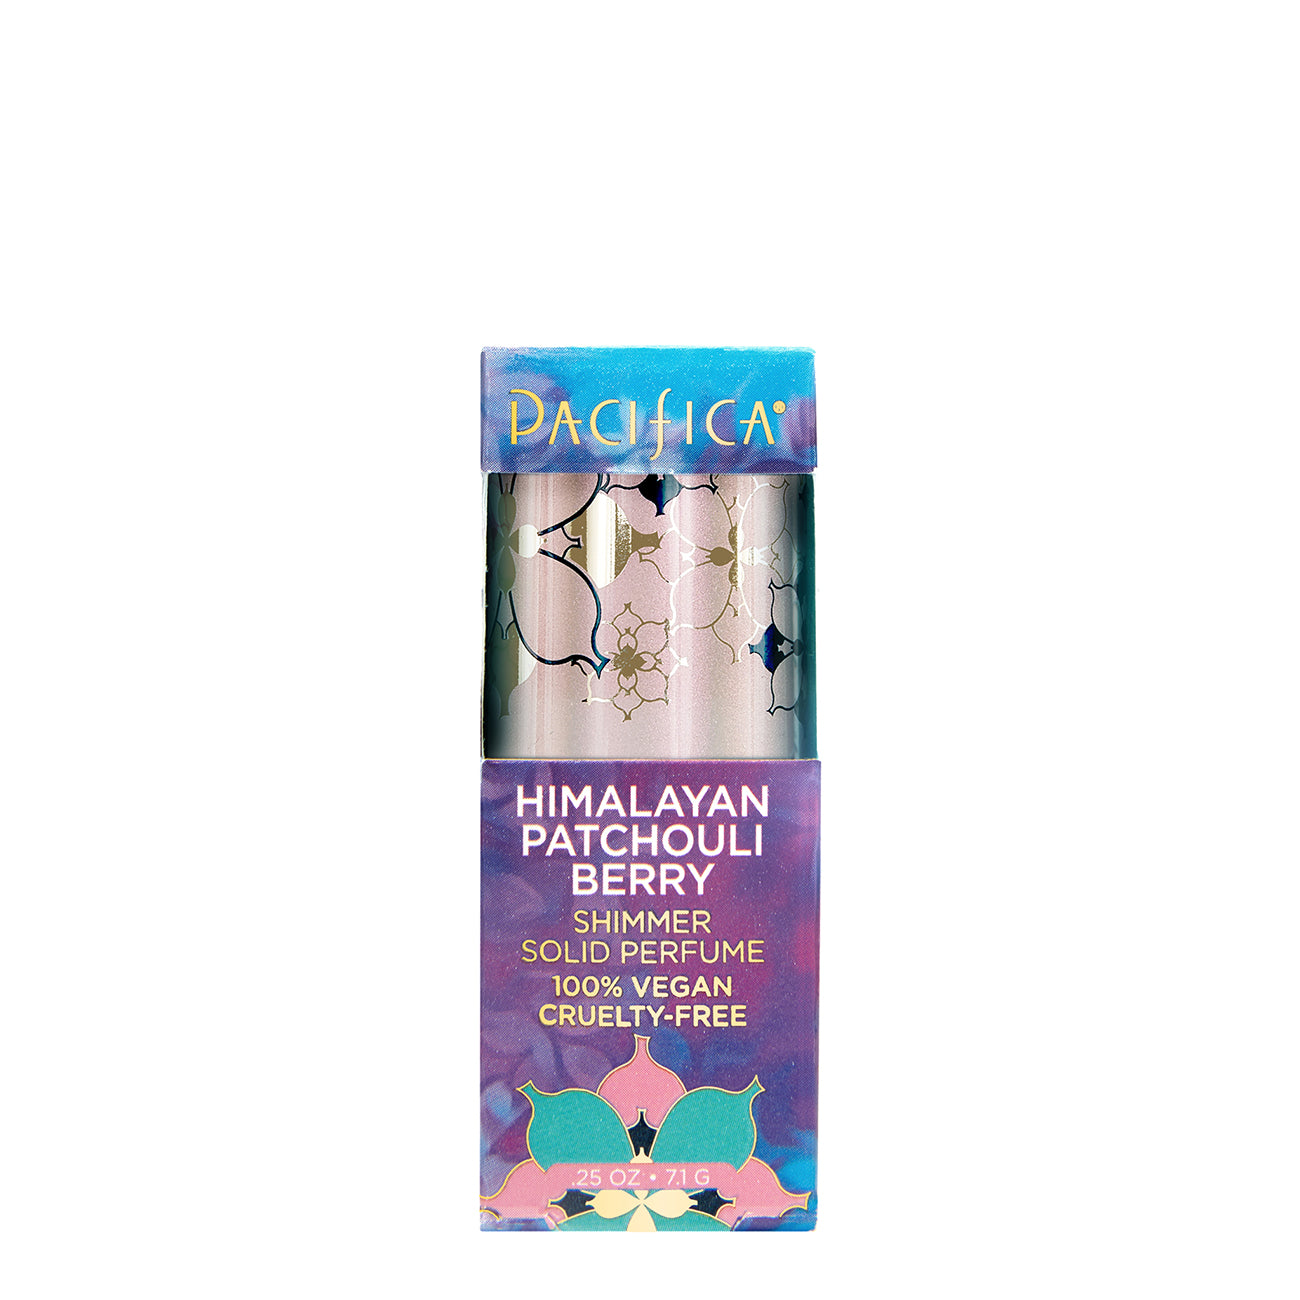 Himalayan Patchouli Berry Shimmer Solid Perfume - Pacifica